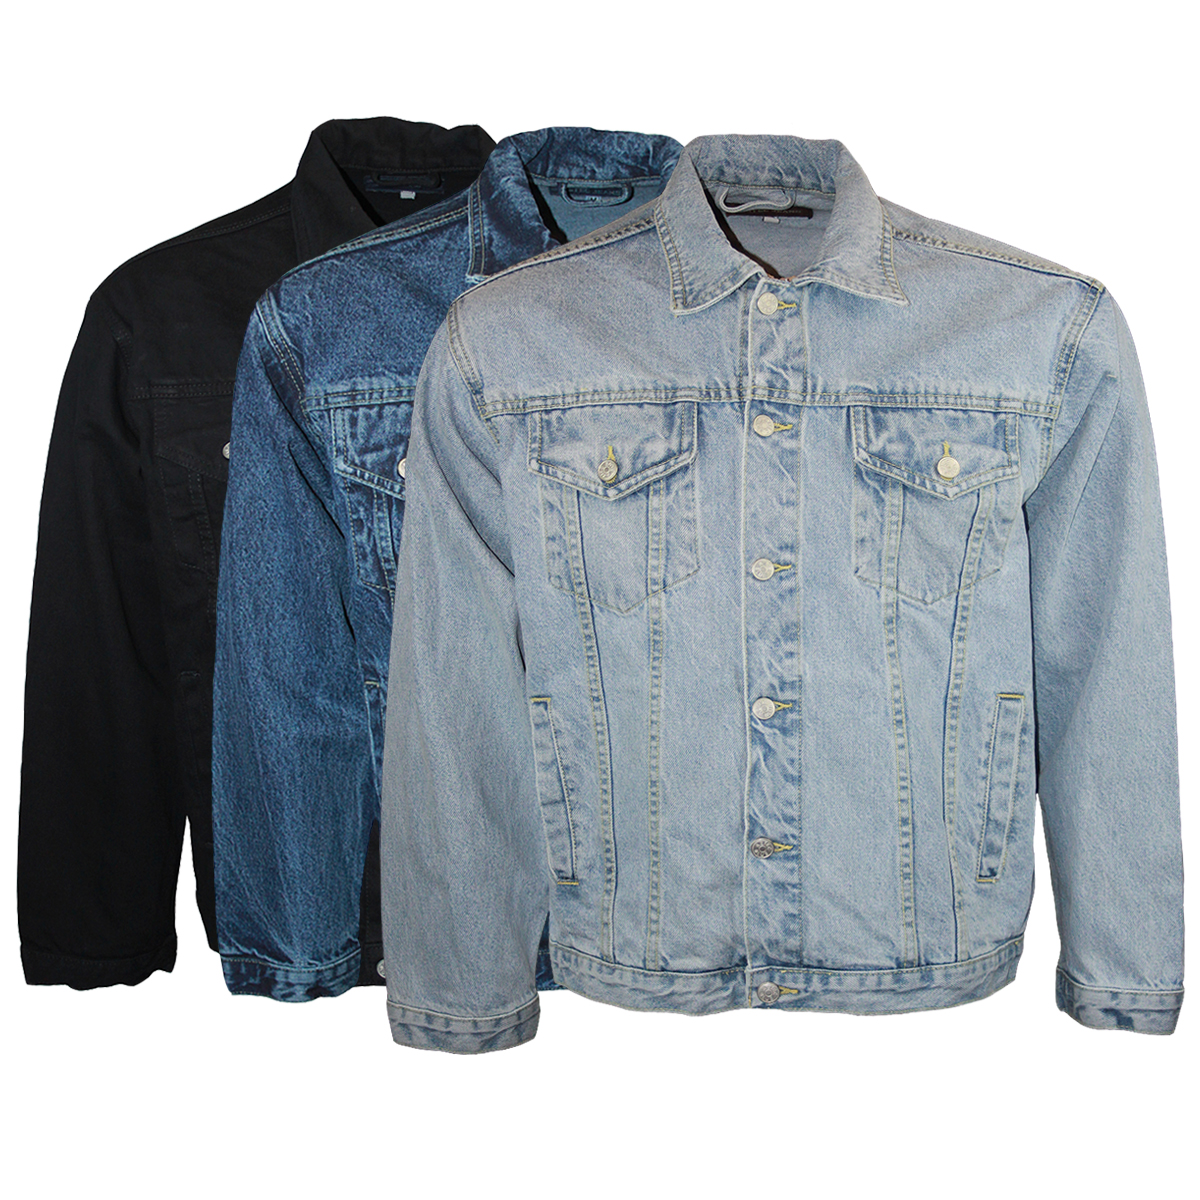 BB MENS AZTEC JEANS LONG SLEEVED COLLARED DENIM JACKET TOP BIG ...